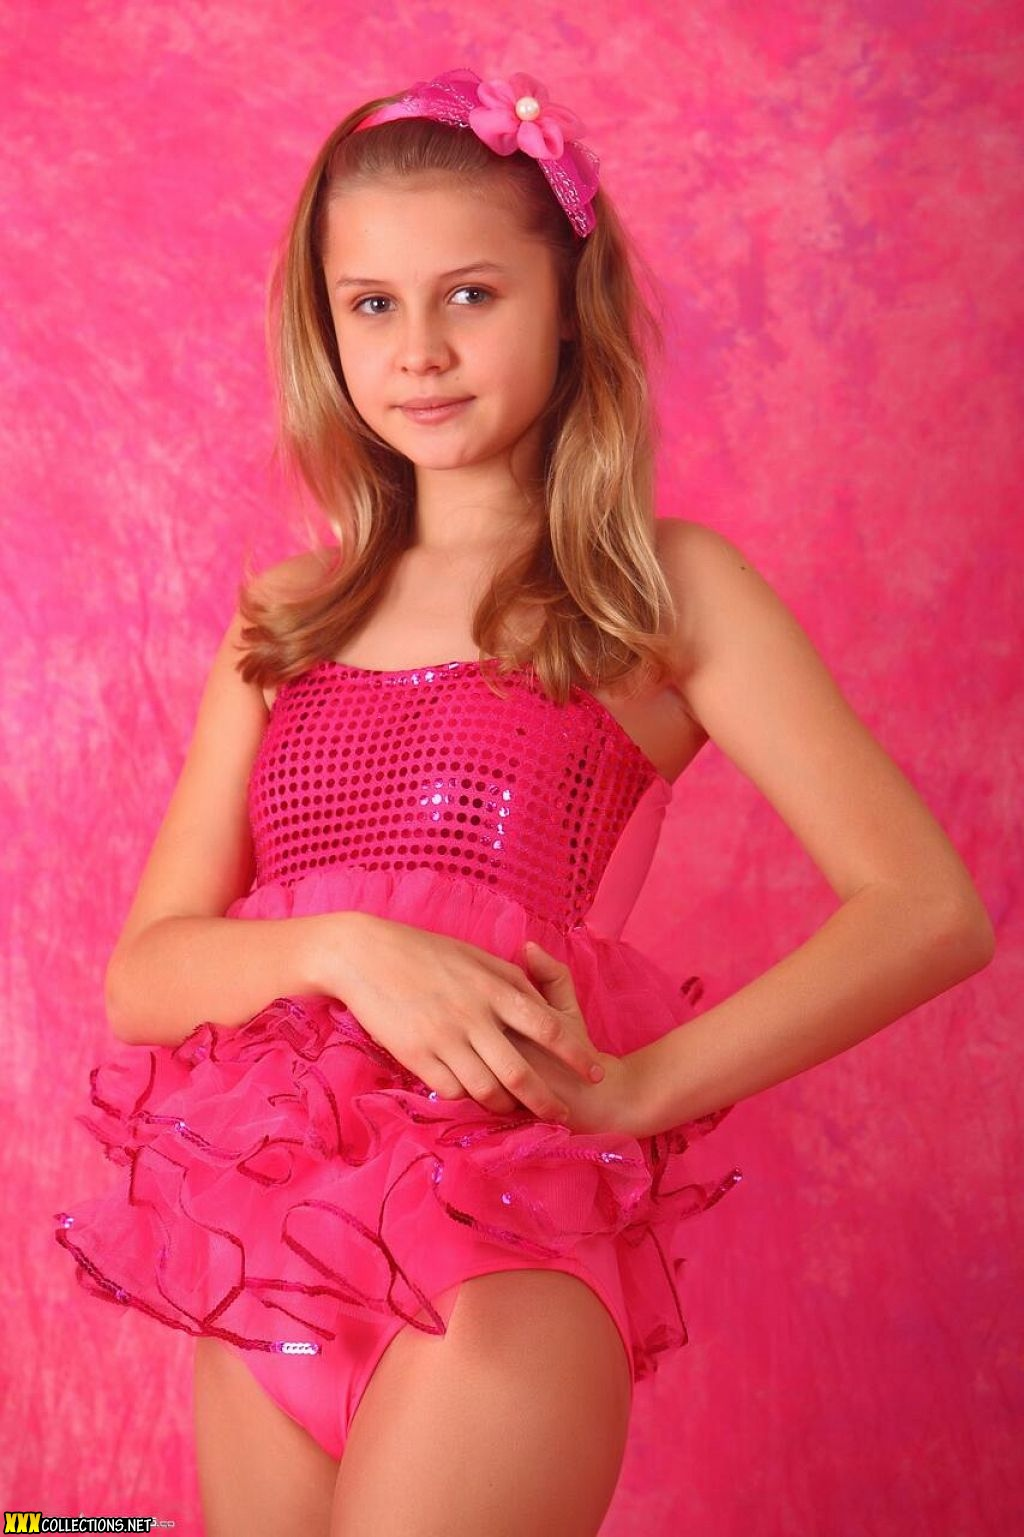 Peachez Teen Model Picture Sets Pack Download: Silver Stars Mika Dance Costume Picture Set 1 Download